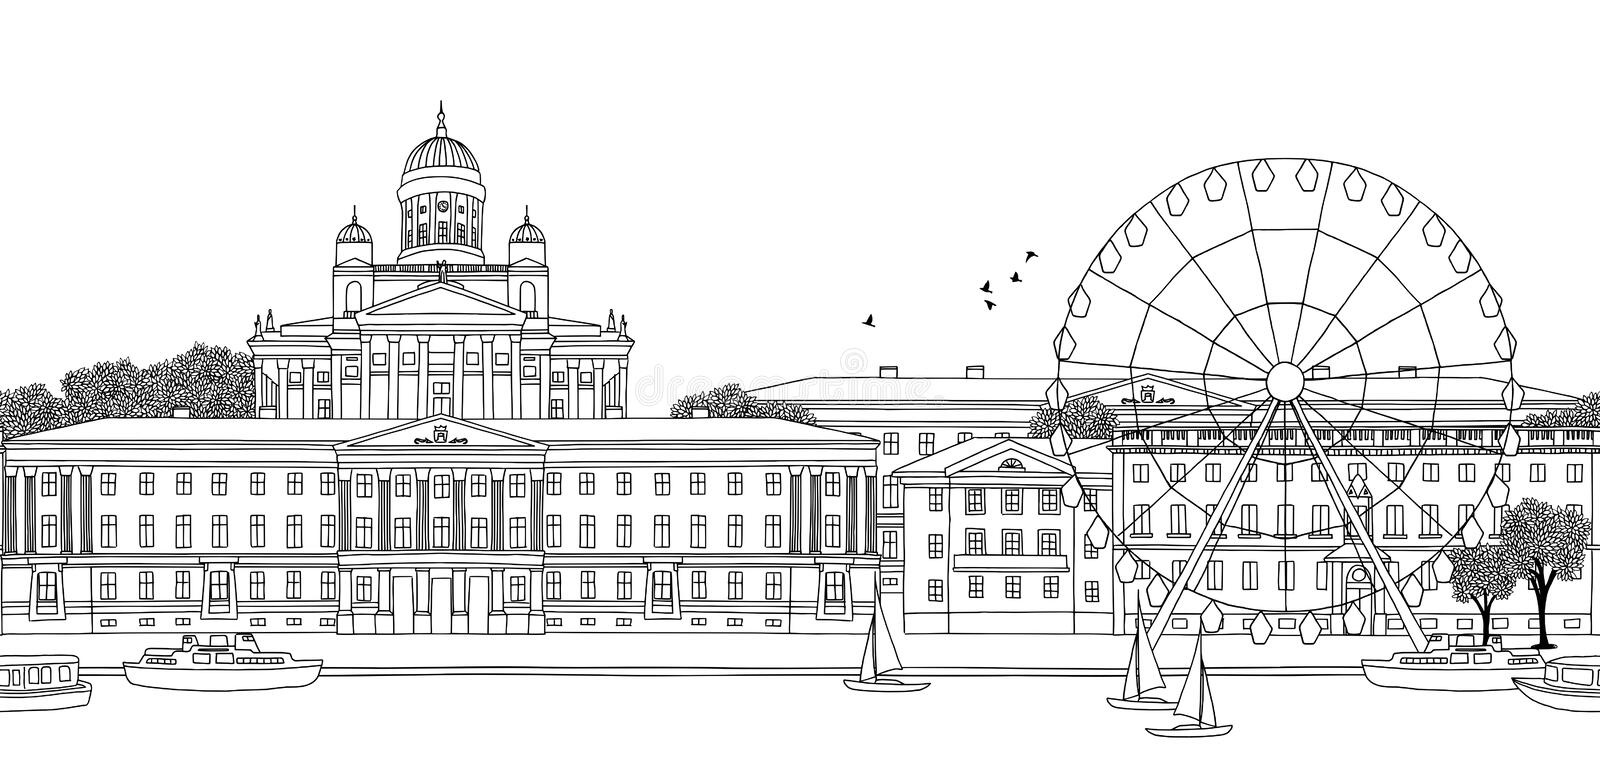 Seamless banner of Helsinki. Helsinki, Finland - Seamless banner of the city's skyline, hand drawn black and white illustration royalty free illustration